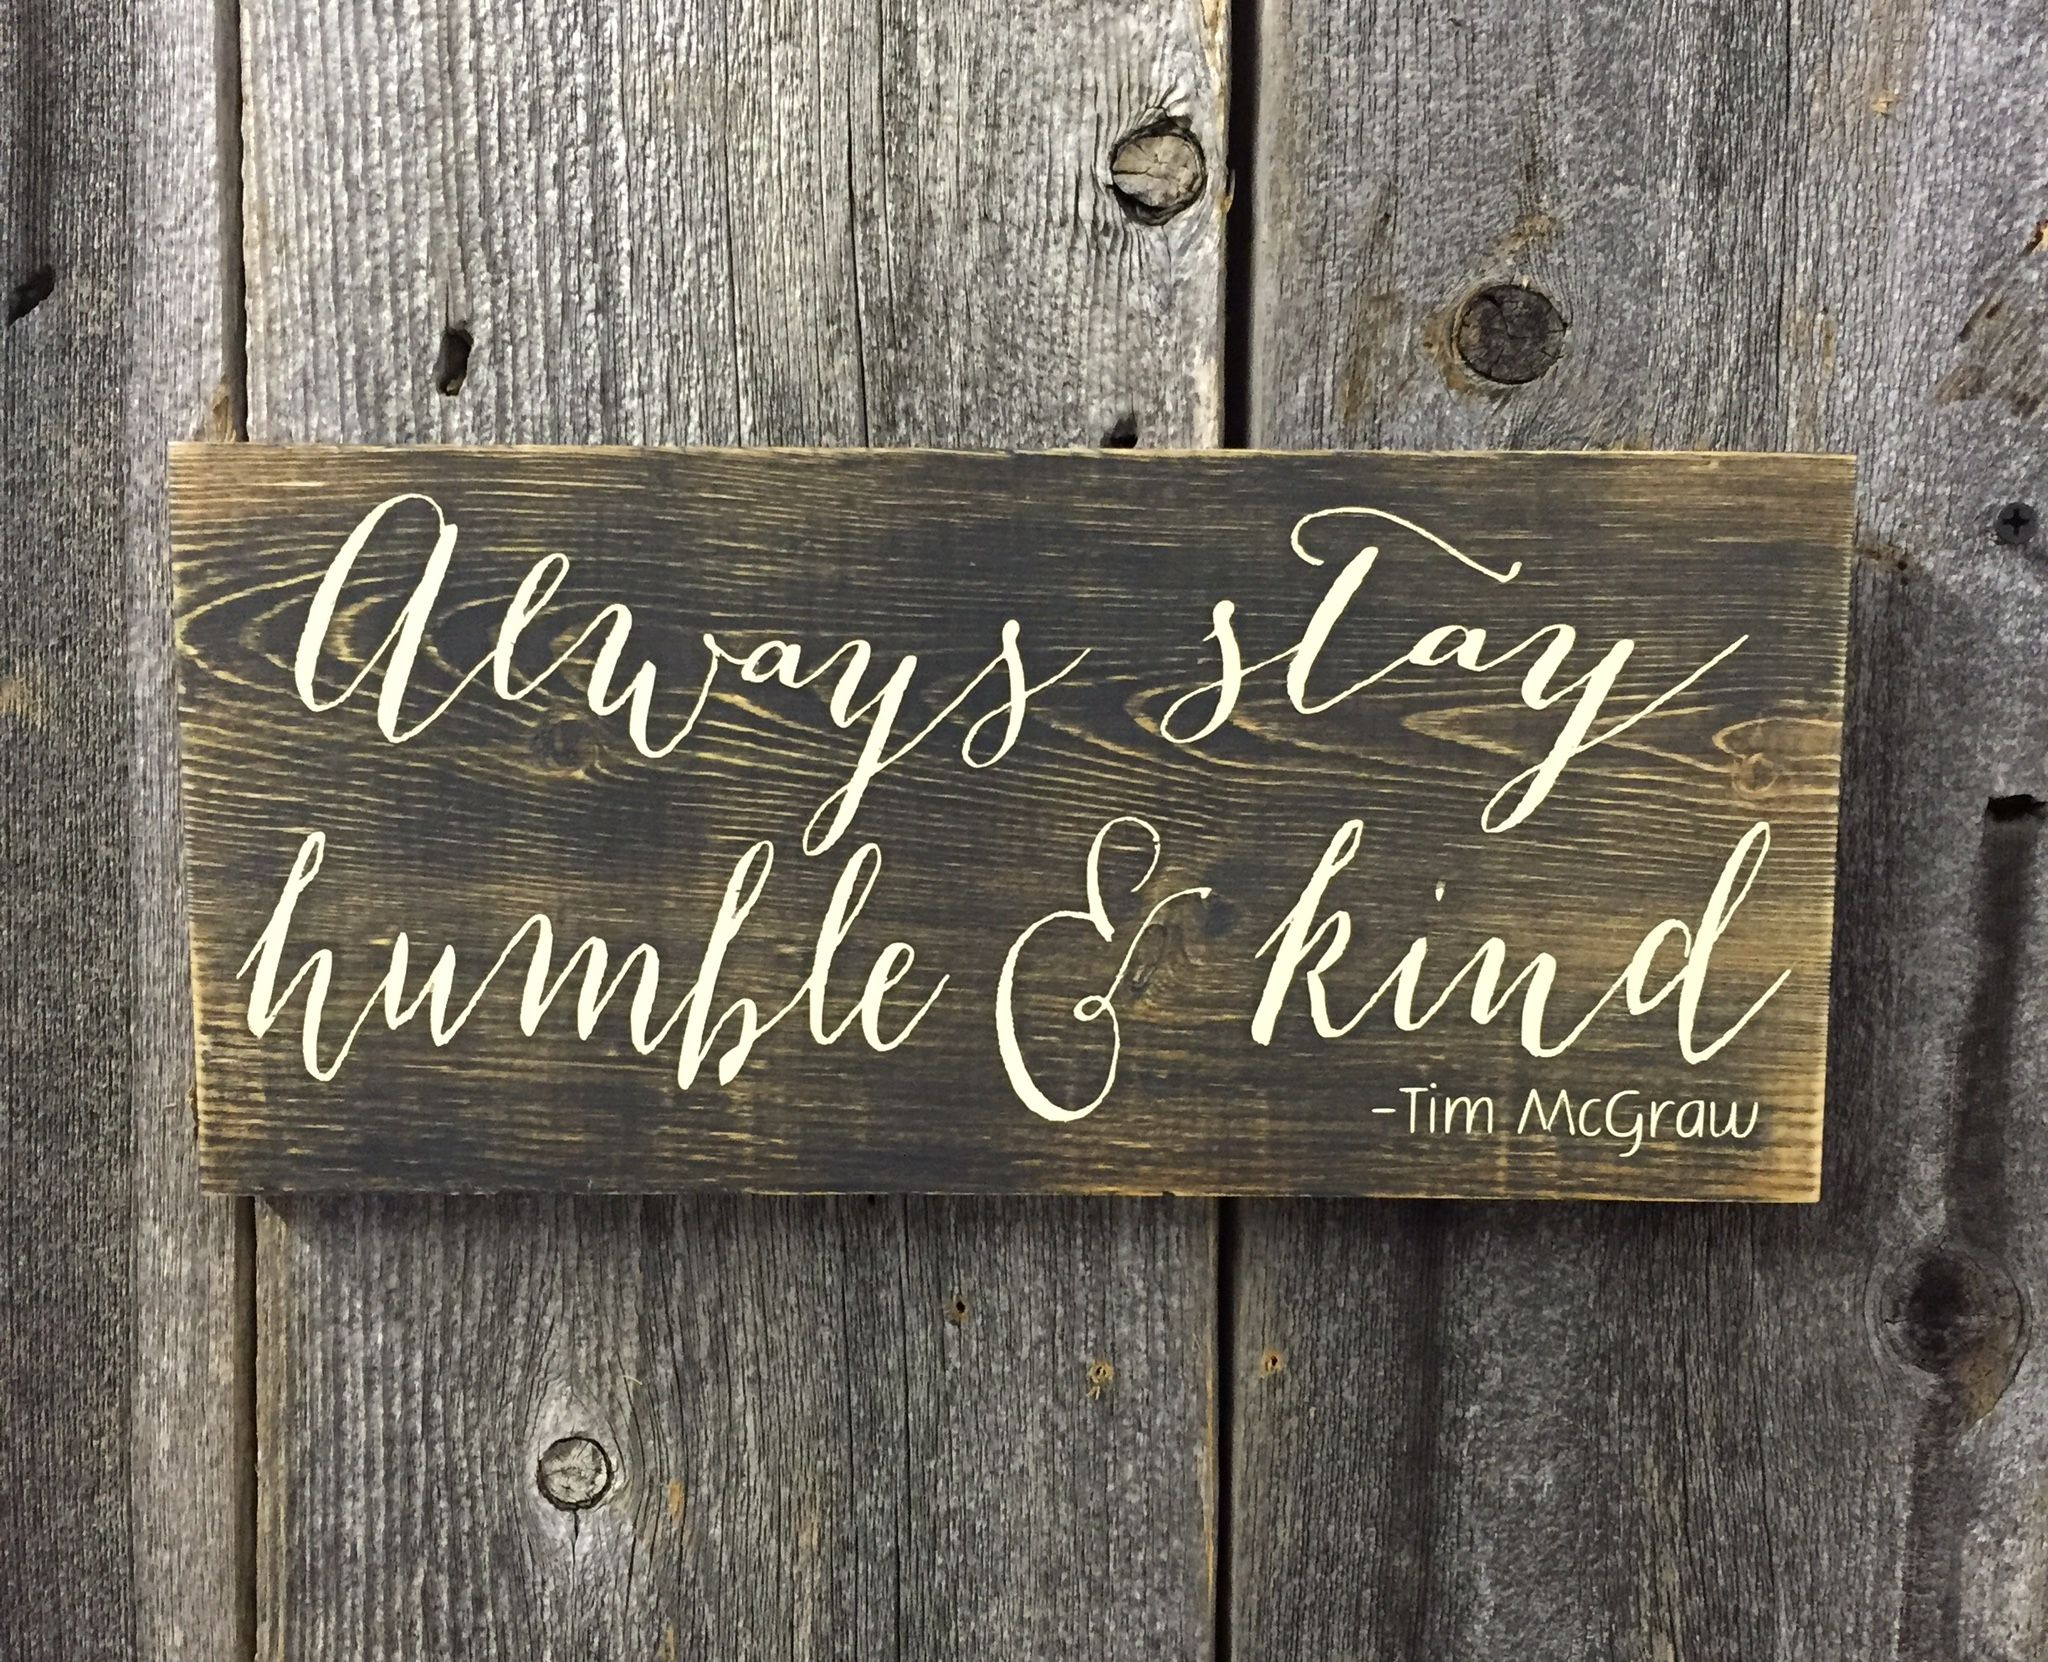 589 Best Plaque Ideas Images On Pinterest | Pallet Signs, Wooden Signs And  Pallet Art